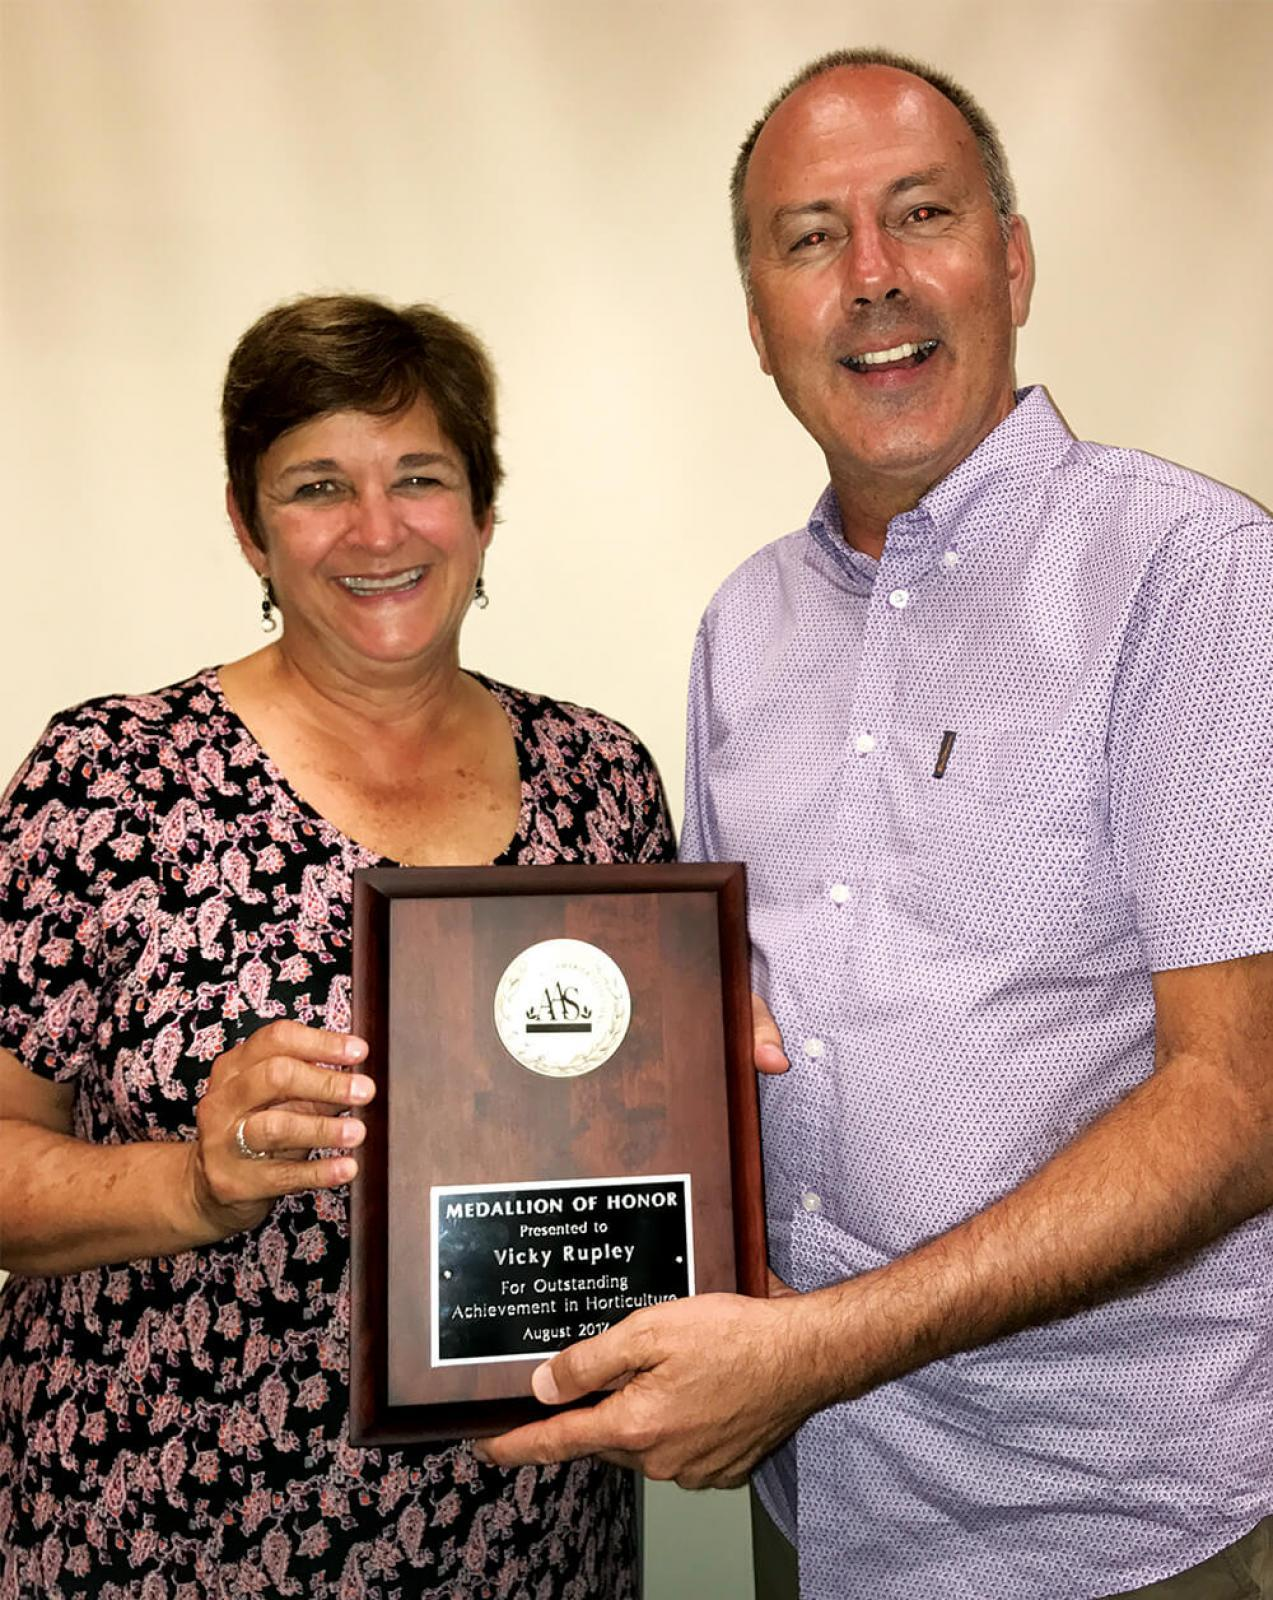 Vicky Rupley was honoured with the award for lifetime dedication to the advancement of horticulture.